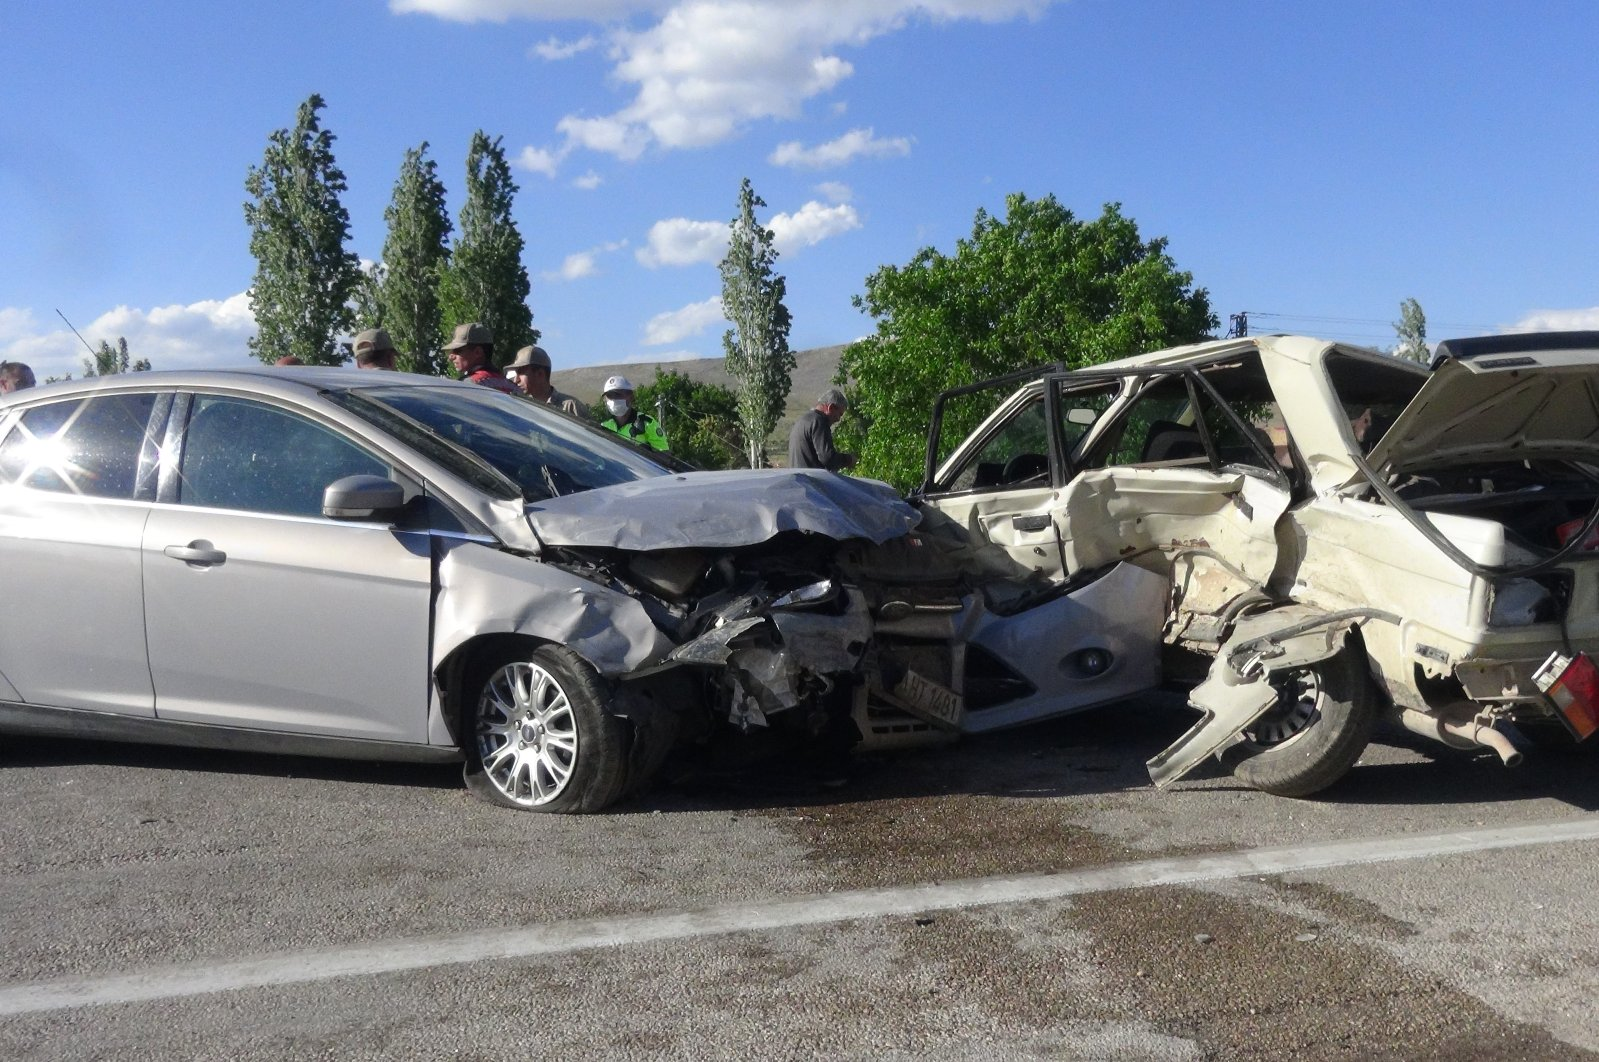 Wreckage of two cars that crashed into each other in Kahramanmaraş, Turkey, May 30, 2020. (İHA Photo)